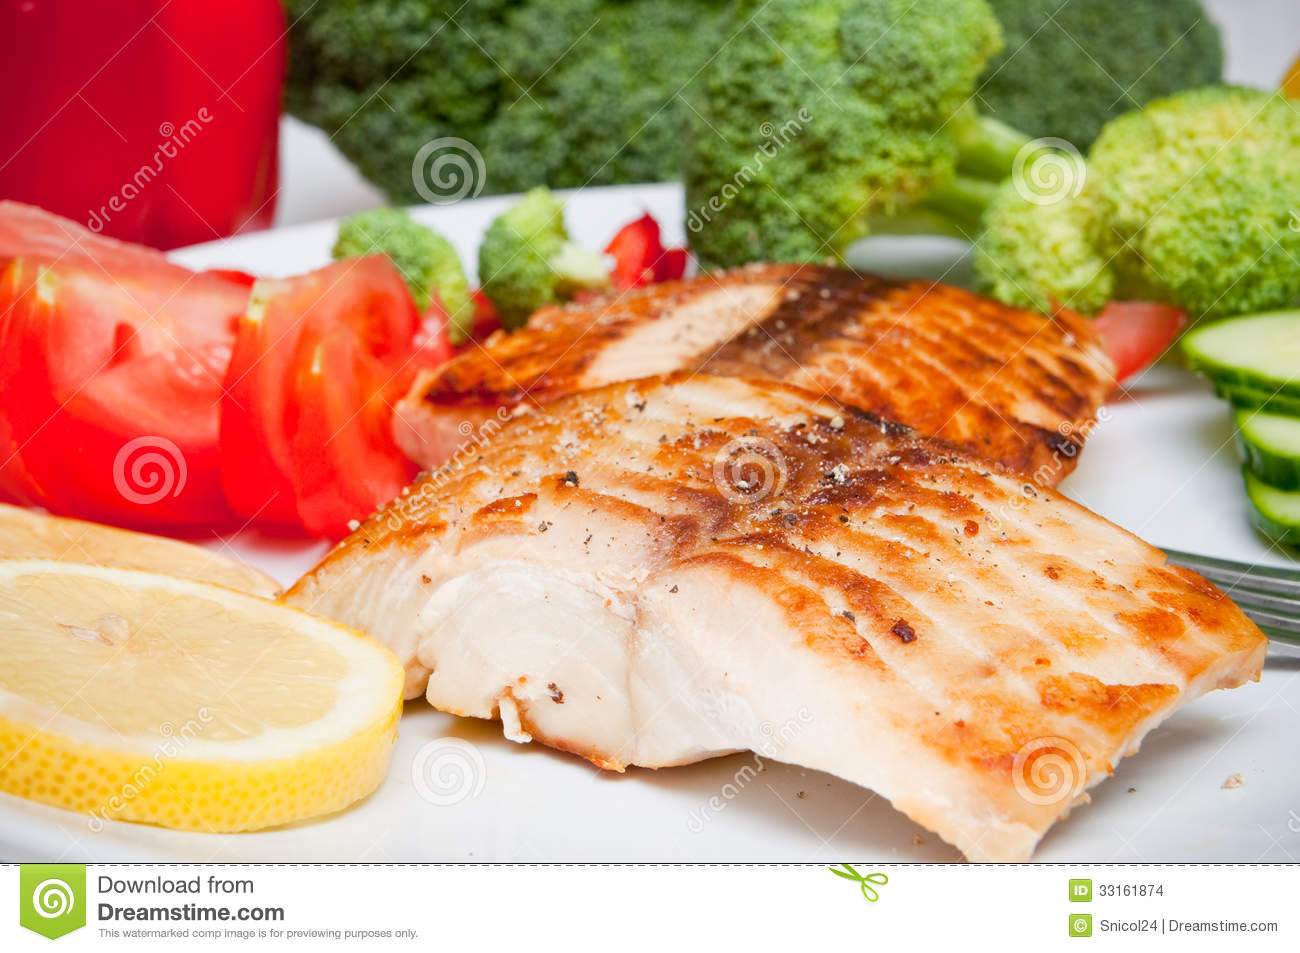 how to cook salmon for diet